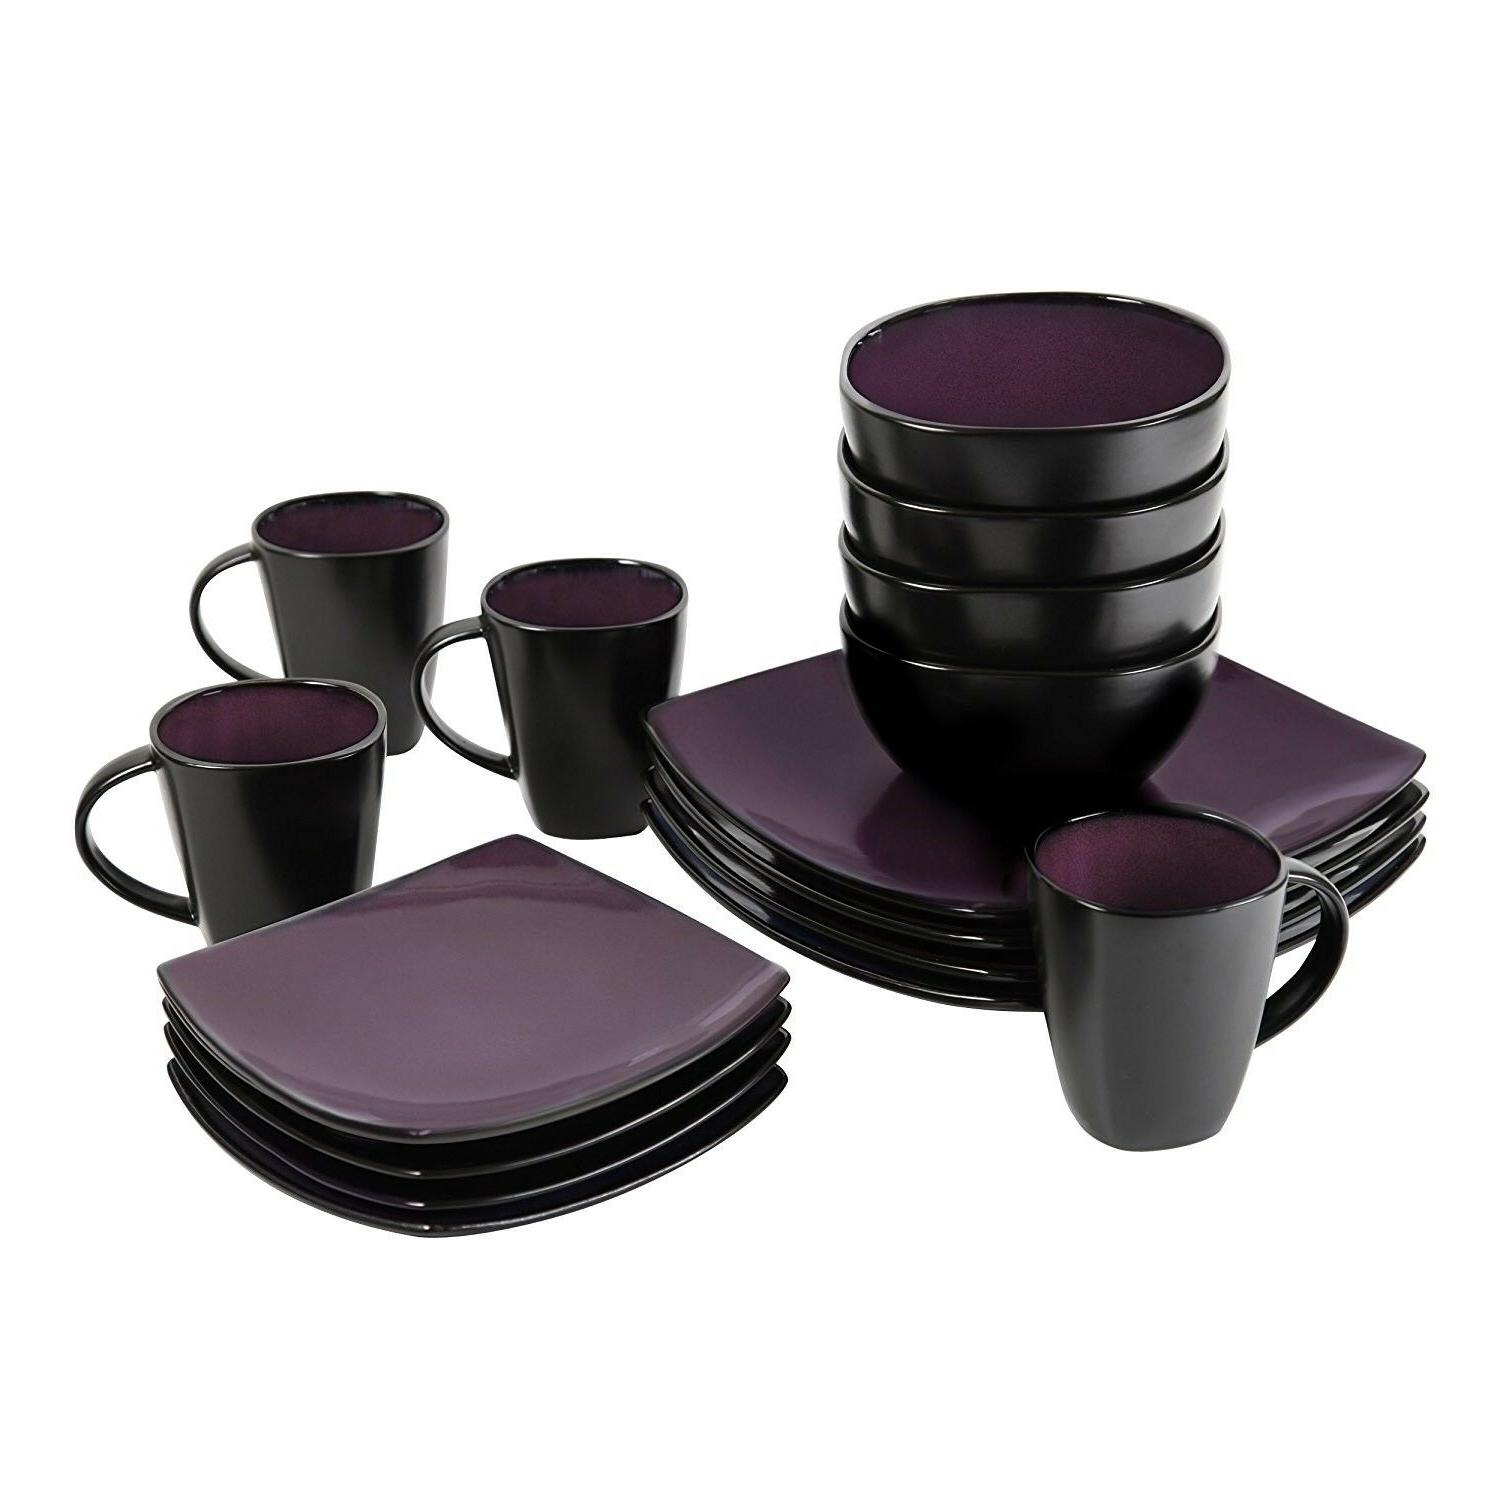 Soho Lounge 16-Piece Reactive Glaze Glass